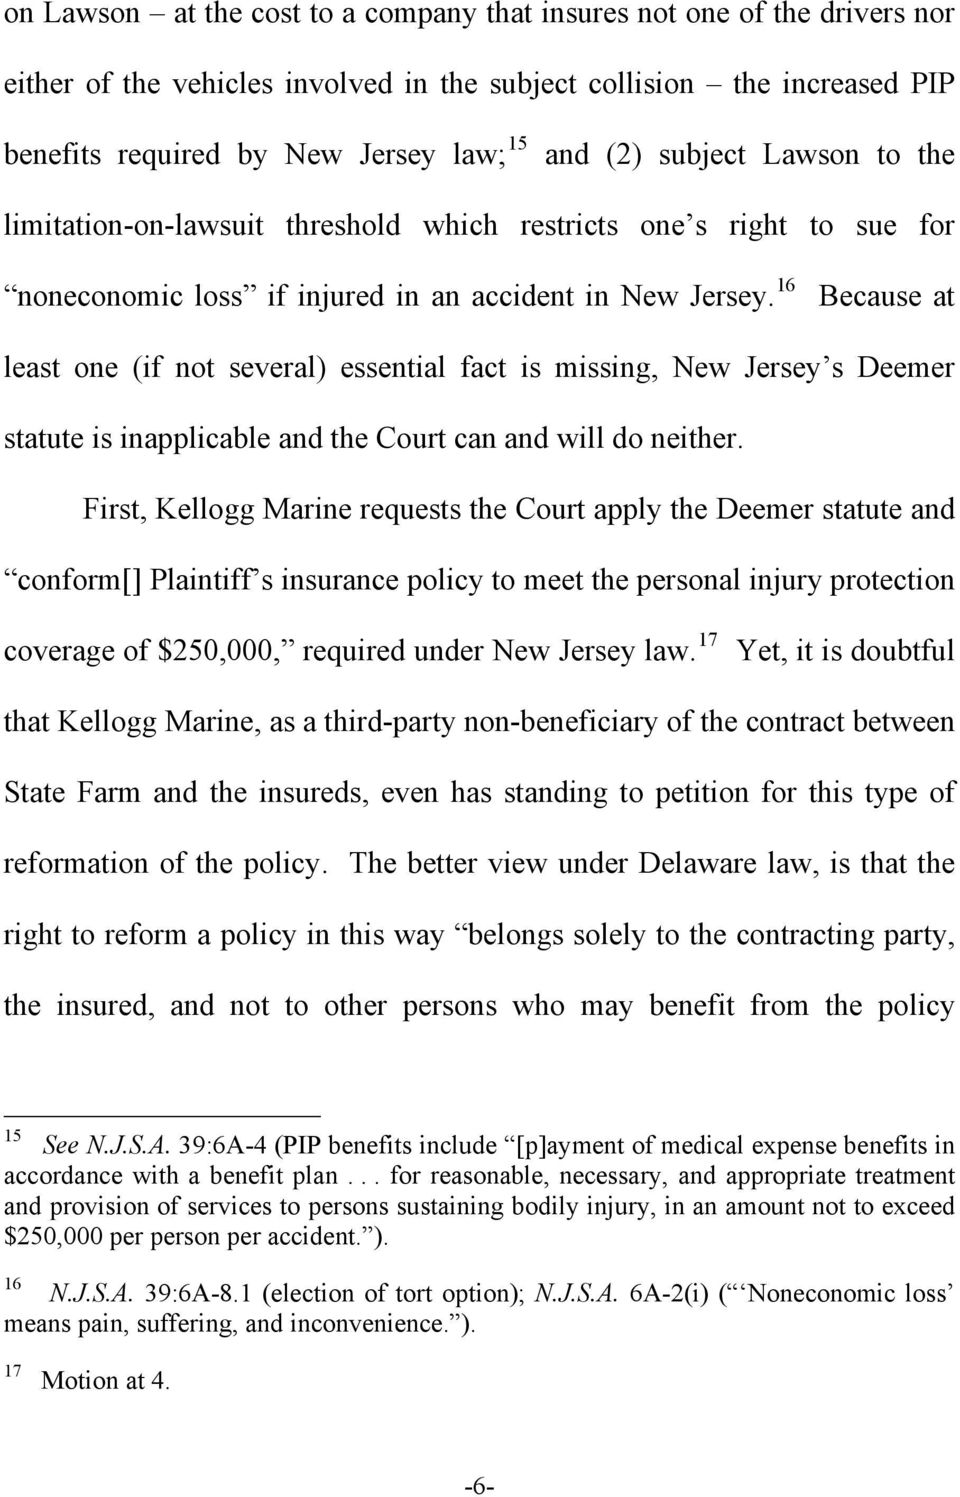 16 Because at least one (if not several) essential fact is missing, New Jersey s Deemer statute is inapplicable and the Court can and will do neither.